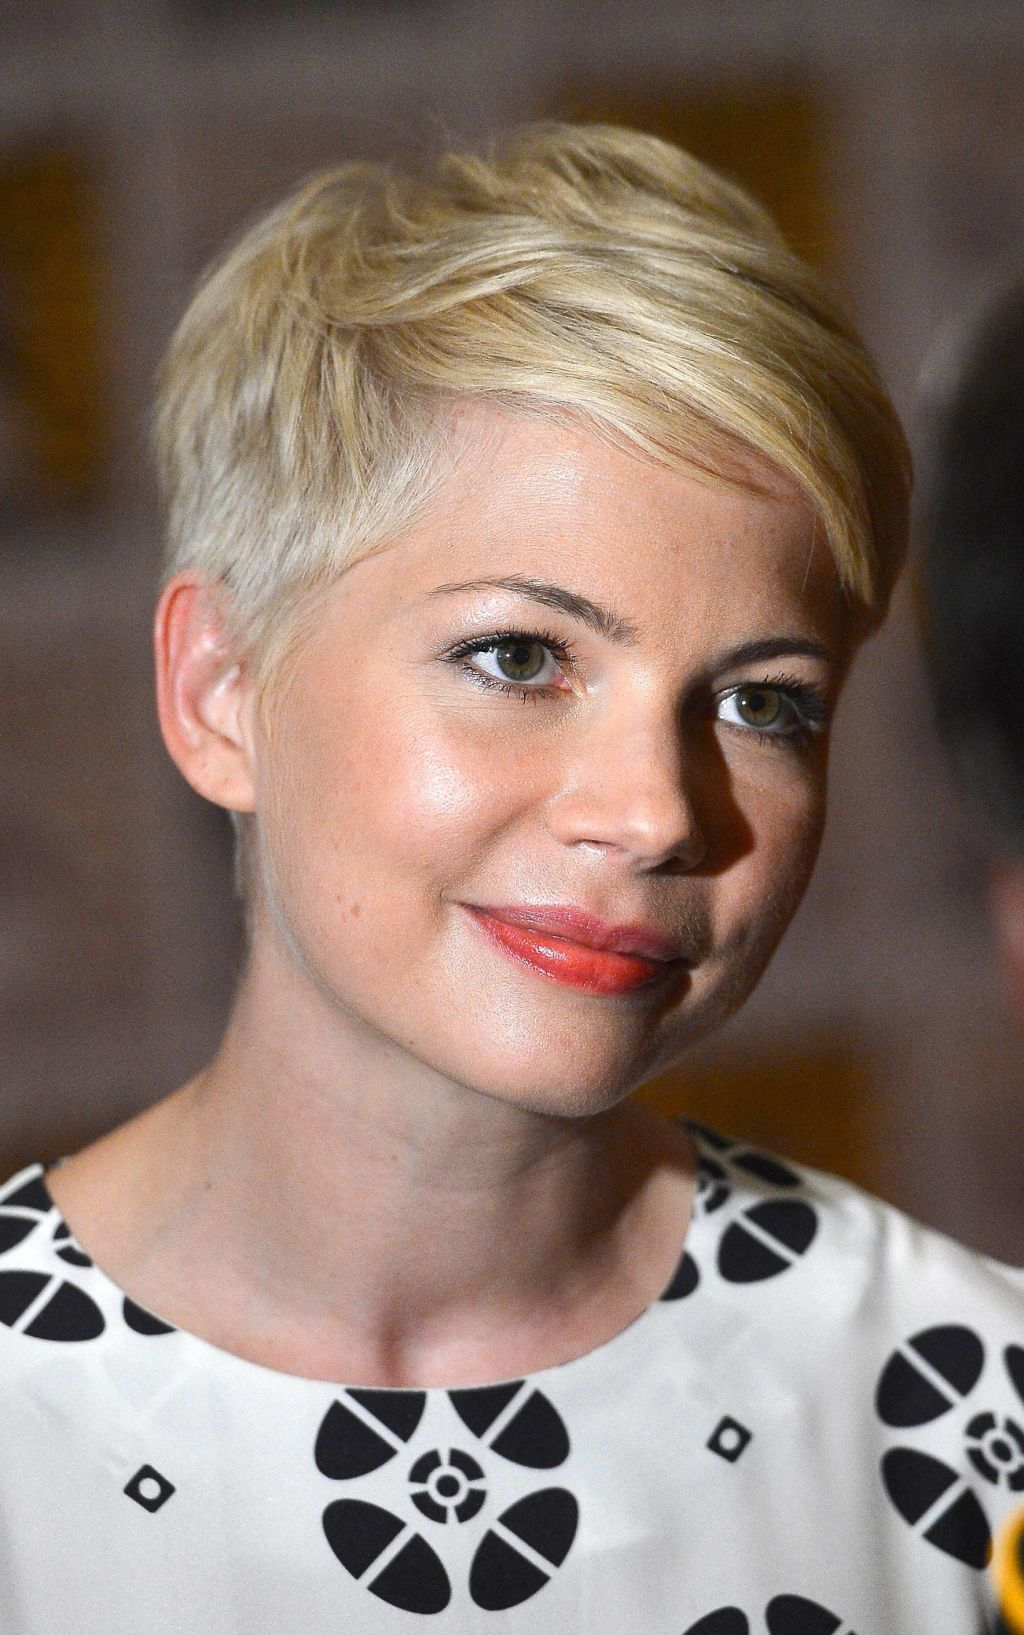 35 Sassy Short Haircuts For Women That Brings Complete Elegance And